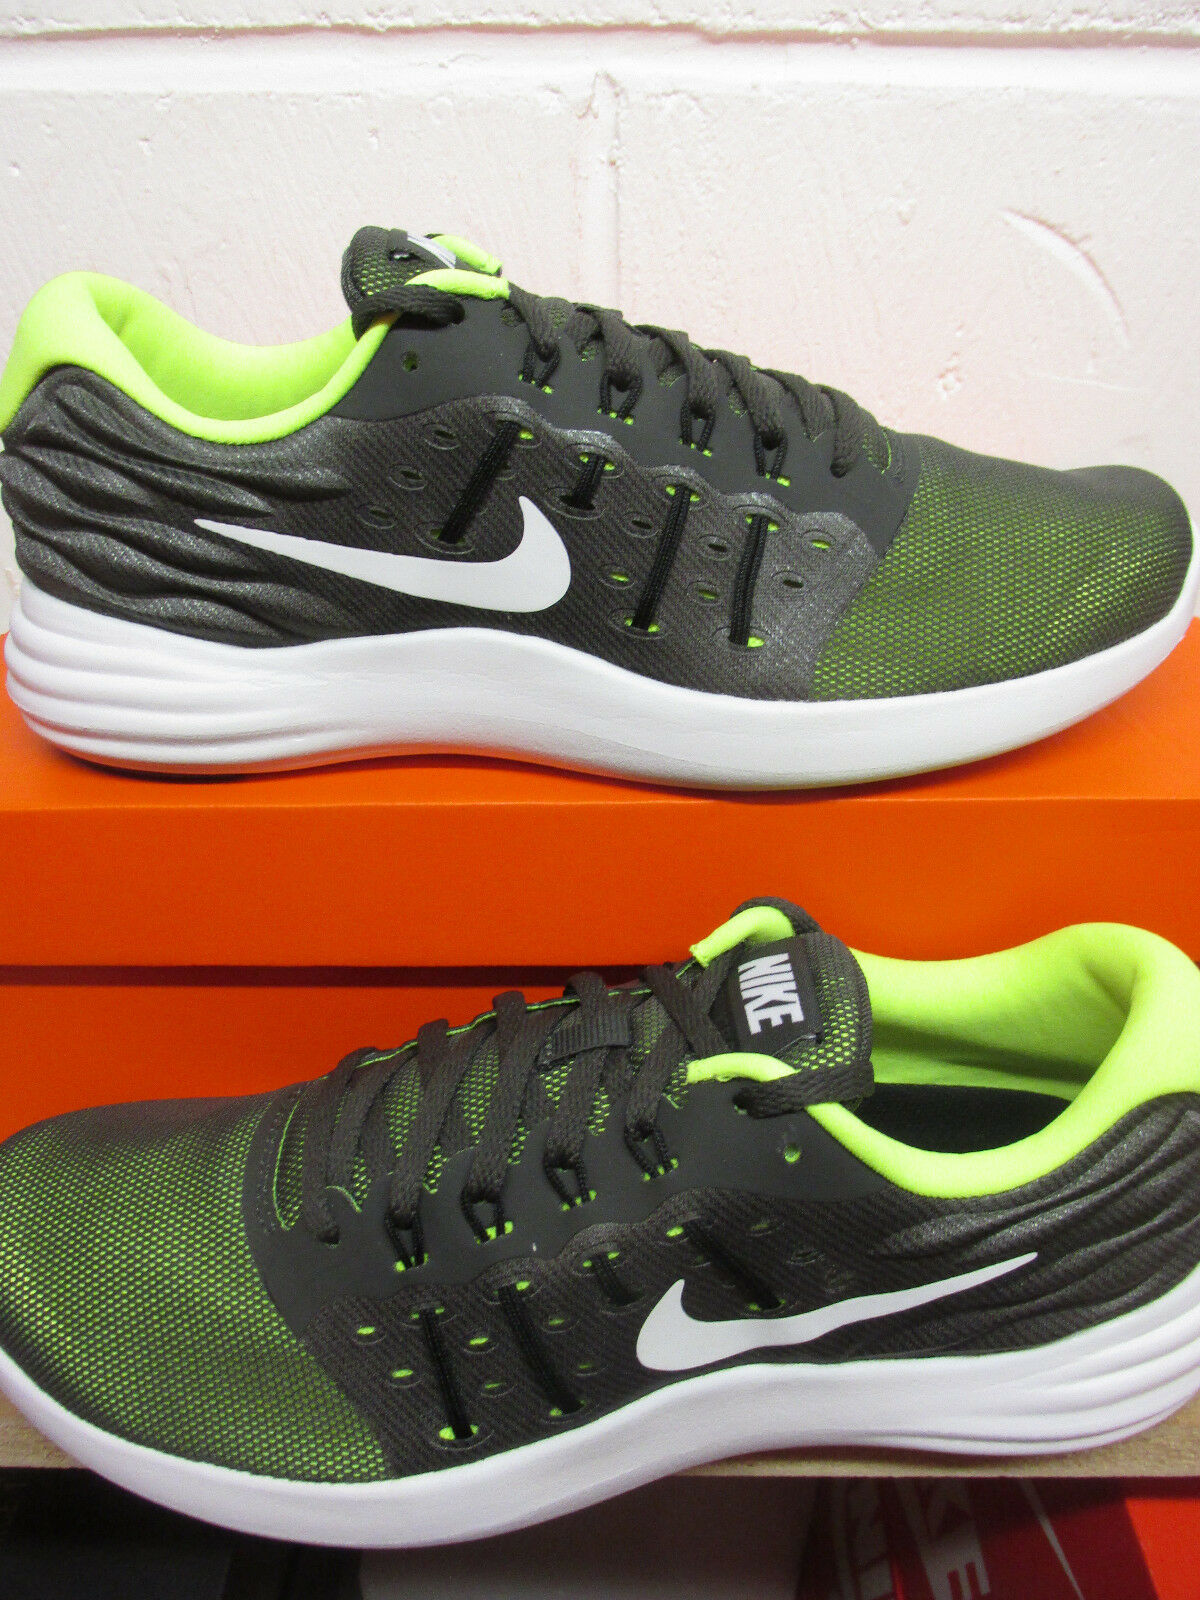 Nike Lunarstelos Mens Running Trainers 844591 011 Sneakers Shoes